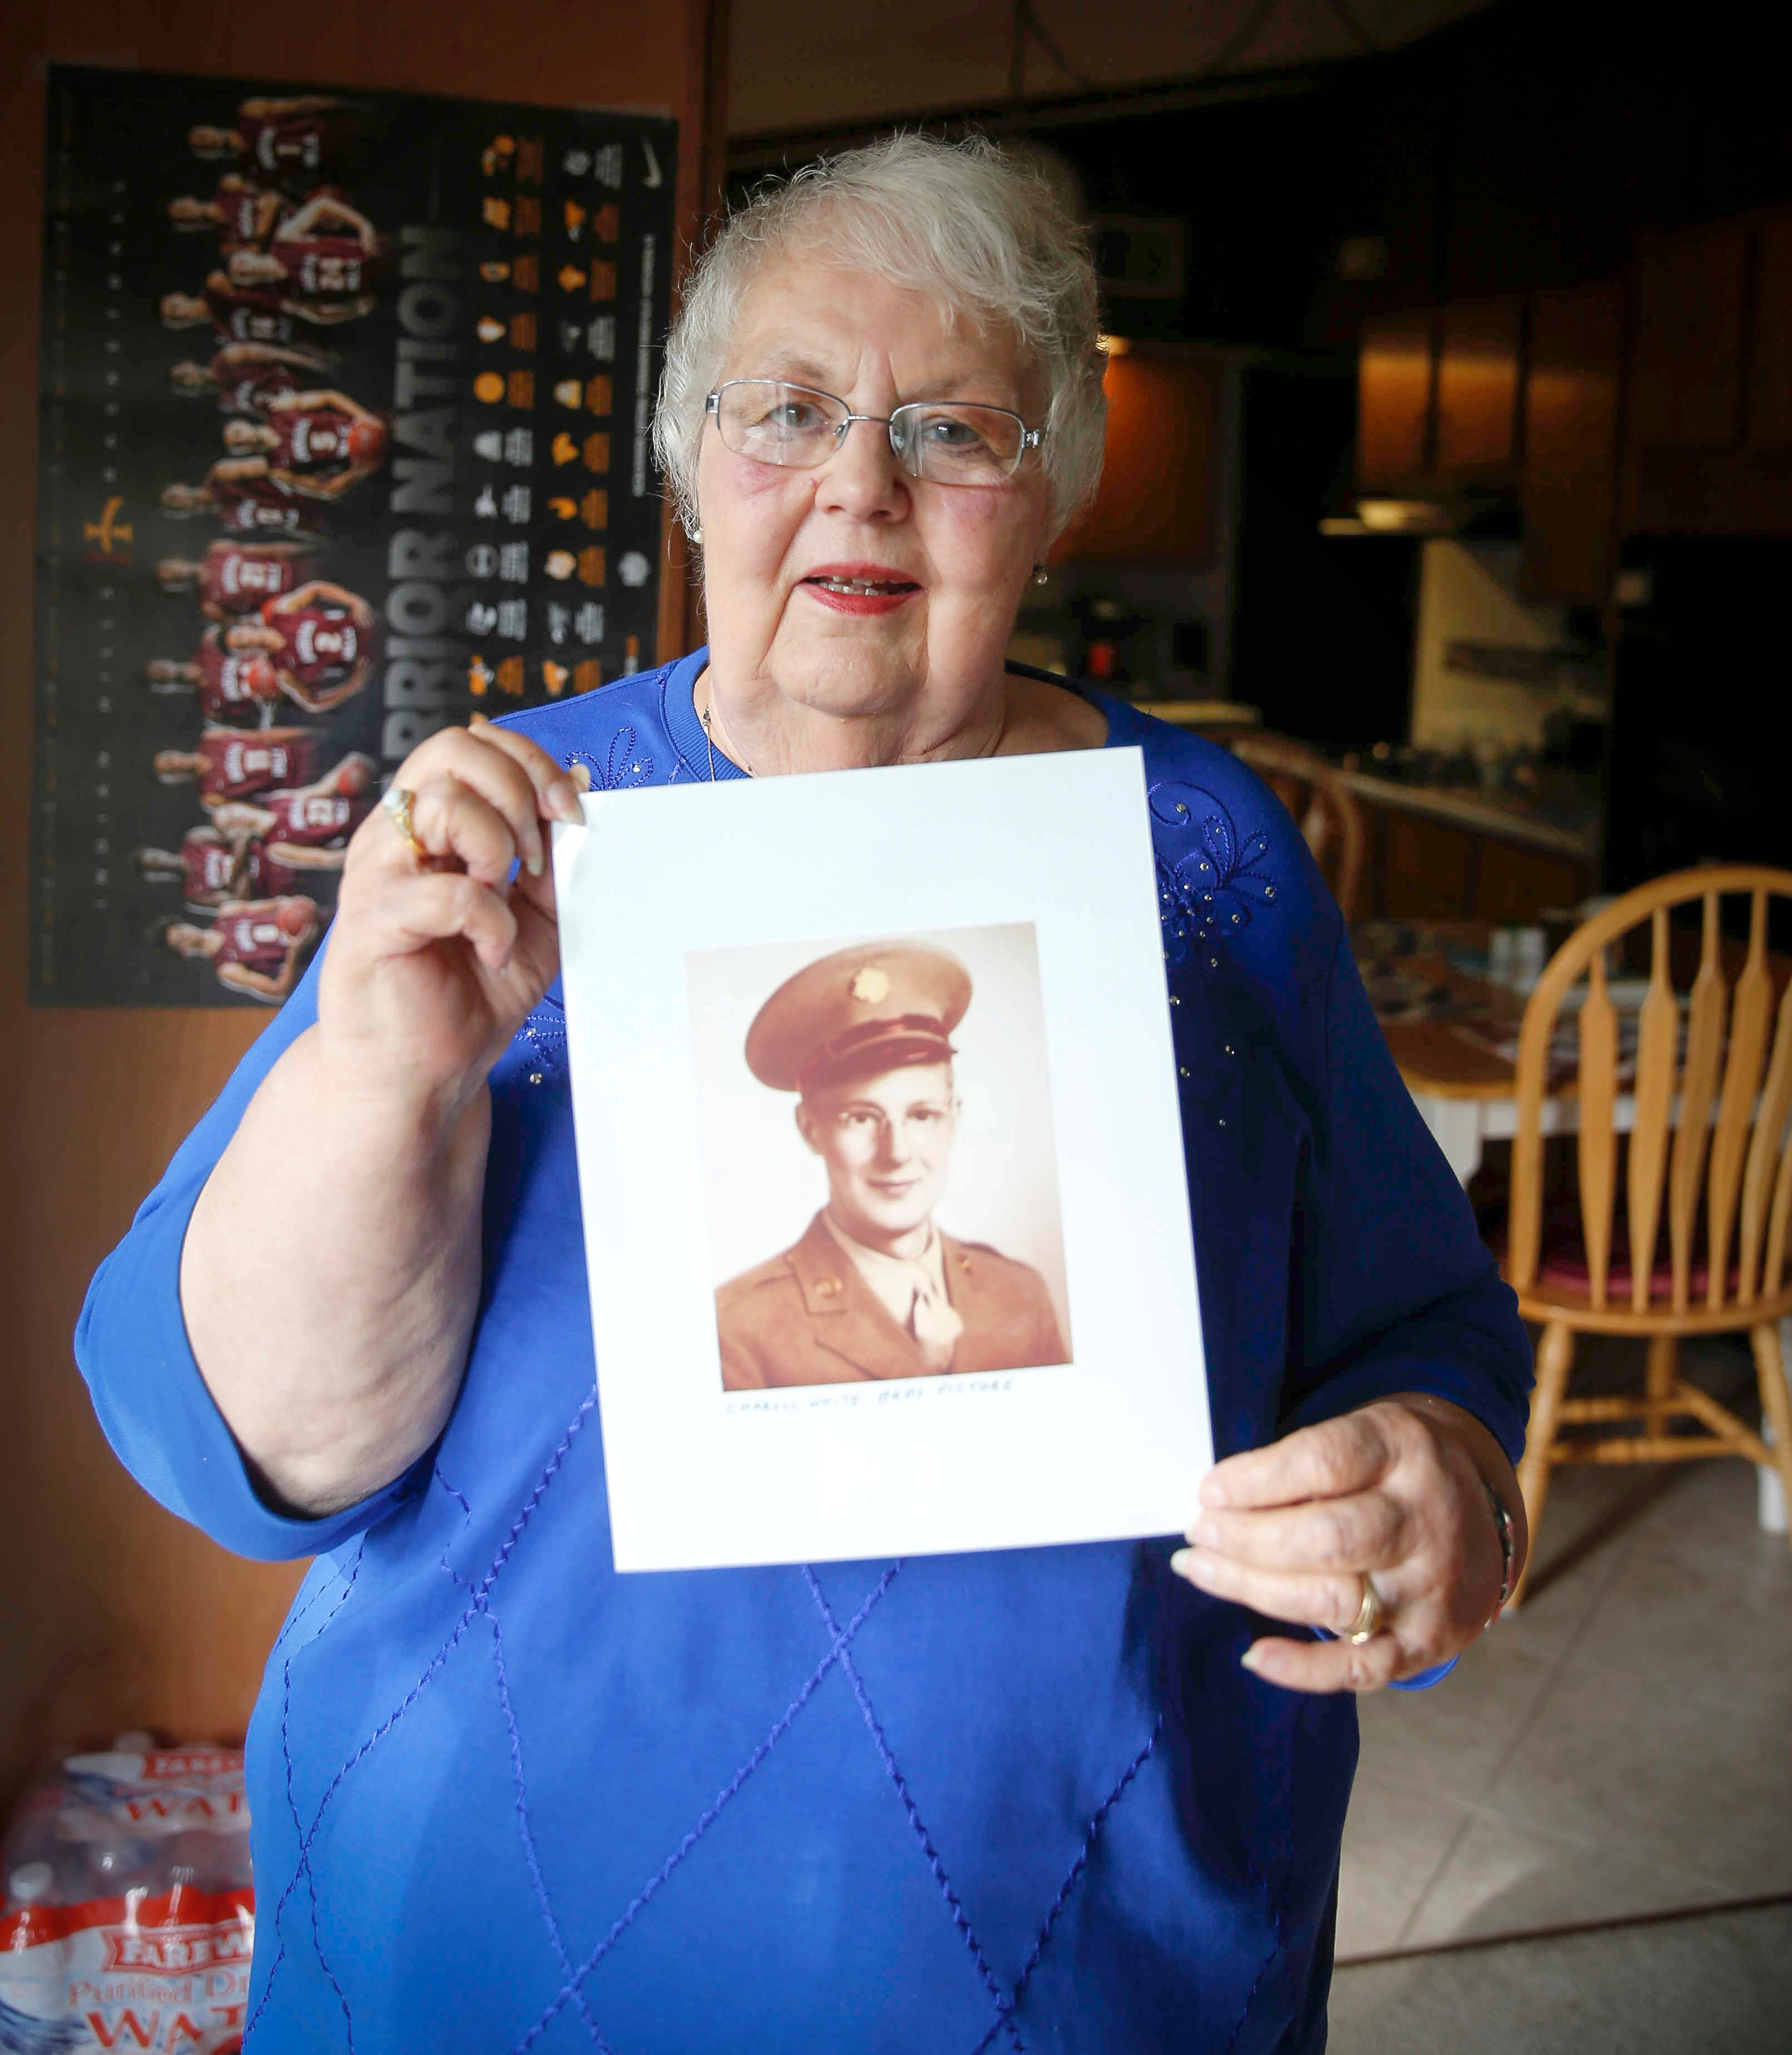 Lynne Blackwell poses for a photo with a portrait of her father, Carroll White, who died from COVID-19 shortly after his 100th birthday.